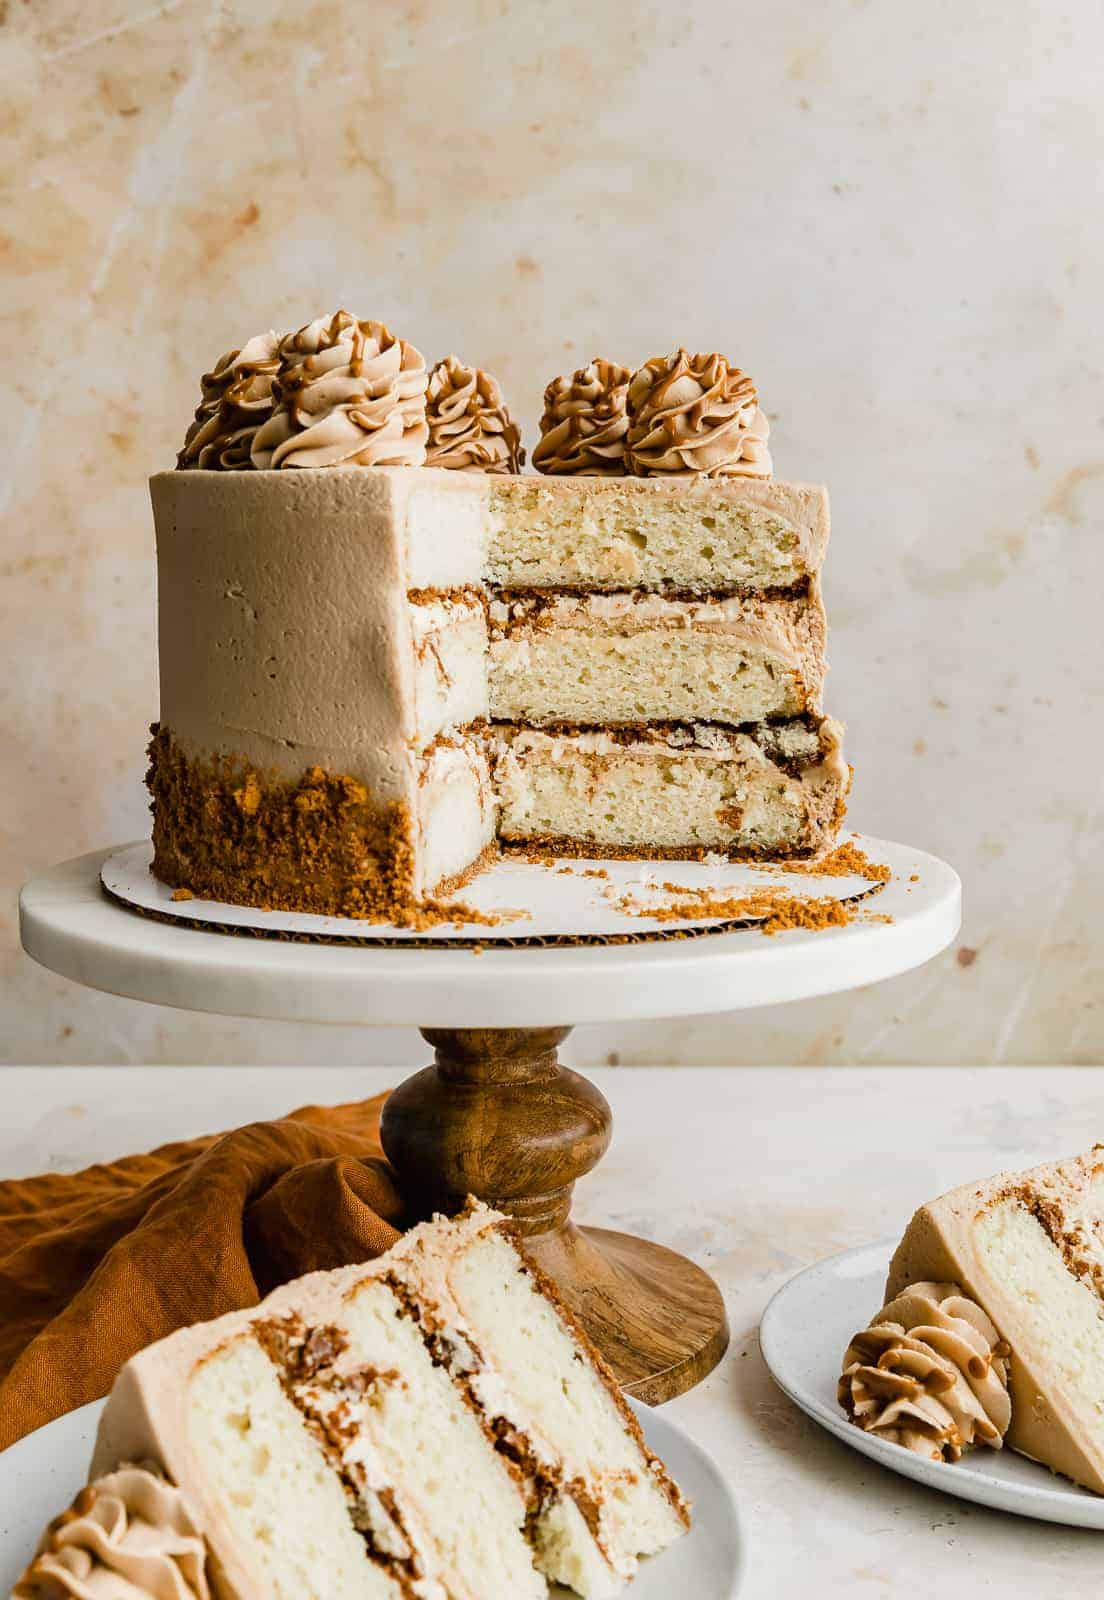 A Biscoff Cake against a cream background showing the 3 layers of cheesecake cake.